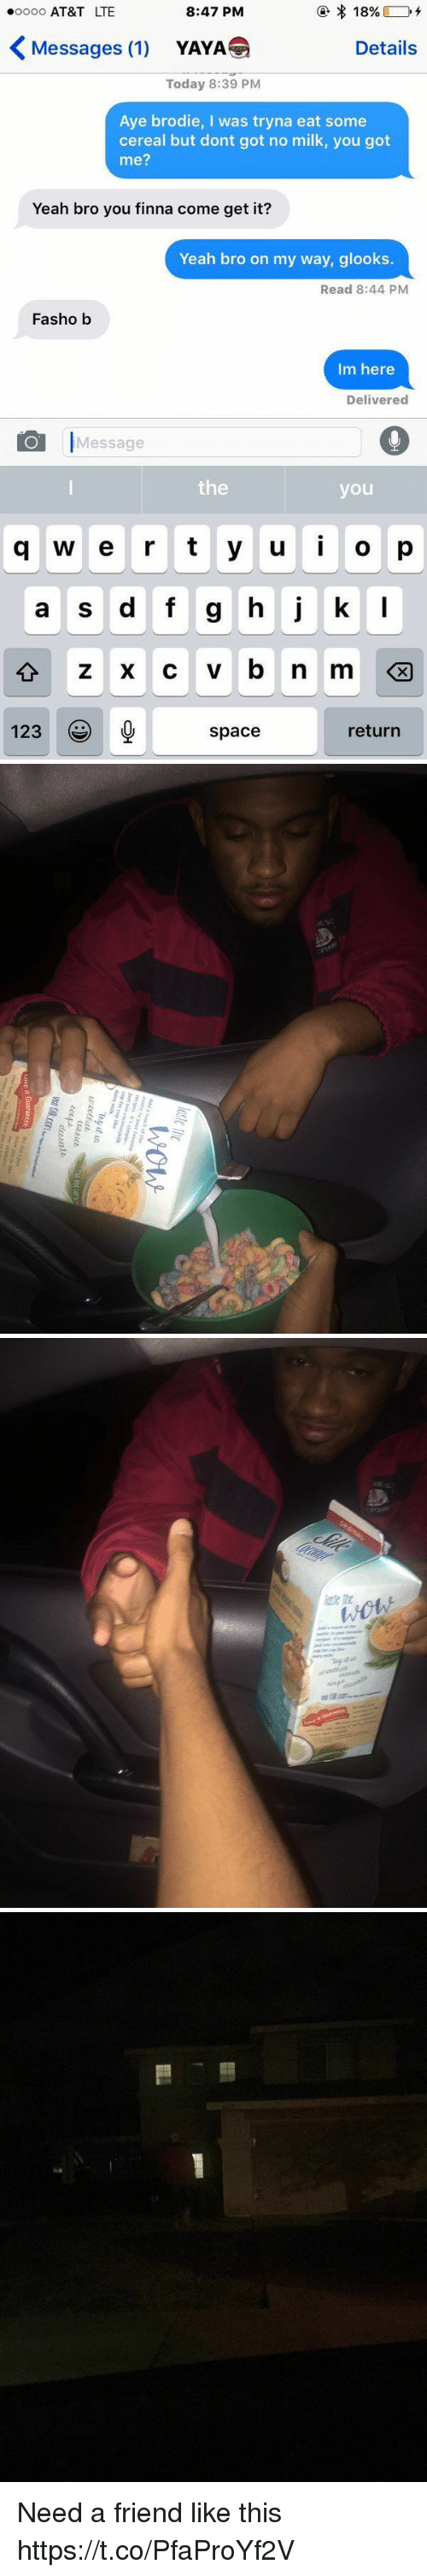 """yaya: 18%  8:47 PM  ooooo AT&T LTE  Messages (1)  Details  YAYA  Today 8:39 PM  Aye brodie, I was tryna eat some  cereal but dont got no milk, you got  me?  Yeah bro you finna come get it?  Yeah bro on my way, glooks  Read 8:44 PM  Fasho b  Im here  Delivered  Message  the  you  g w e r t y u i o p  a s d f g h j k  l  123  return  space   lastc ite  wow  Add a touche of the  favorite  Justusers-simple.. 결..  recig es It's simple-  just use coconutmilk  cup like  dairy makThy it  """"Iny it in  uact fied  ualitb  Fdewate  Vst Sgkcon-and  Love It Guarantee  ran tee  we don't just   agiEss  anaeroes  era corn. Need a friend like this https://t.co/PfaProYf2V"""